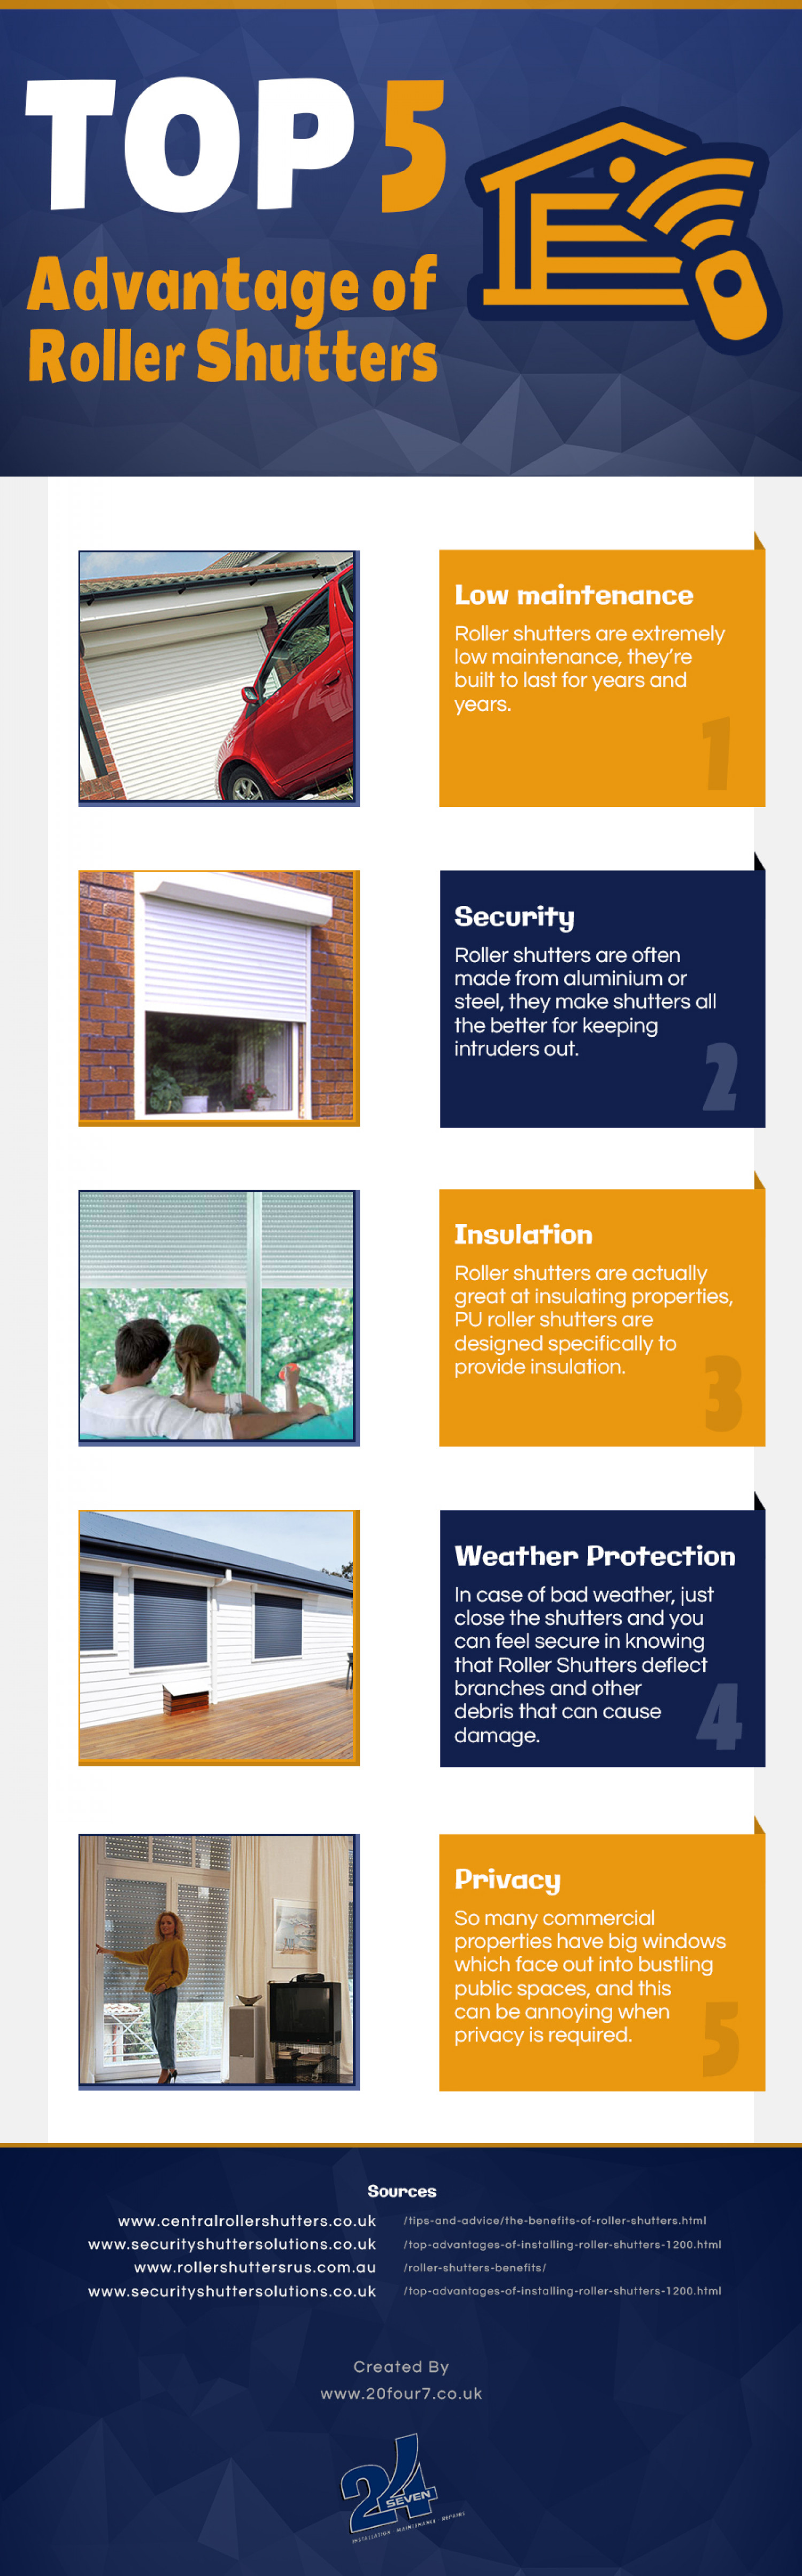 Top 5 Advantages of Roller Shutters Infographic